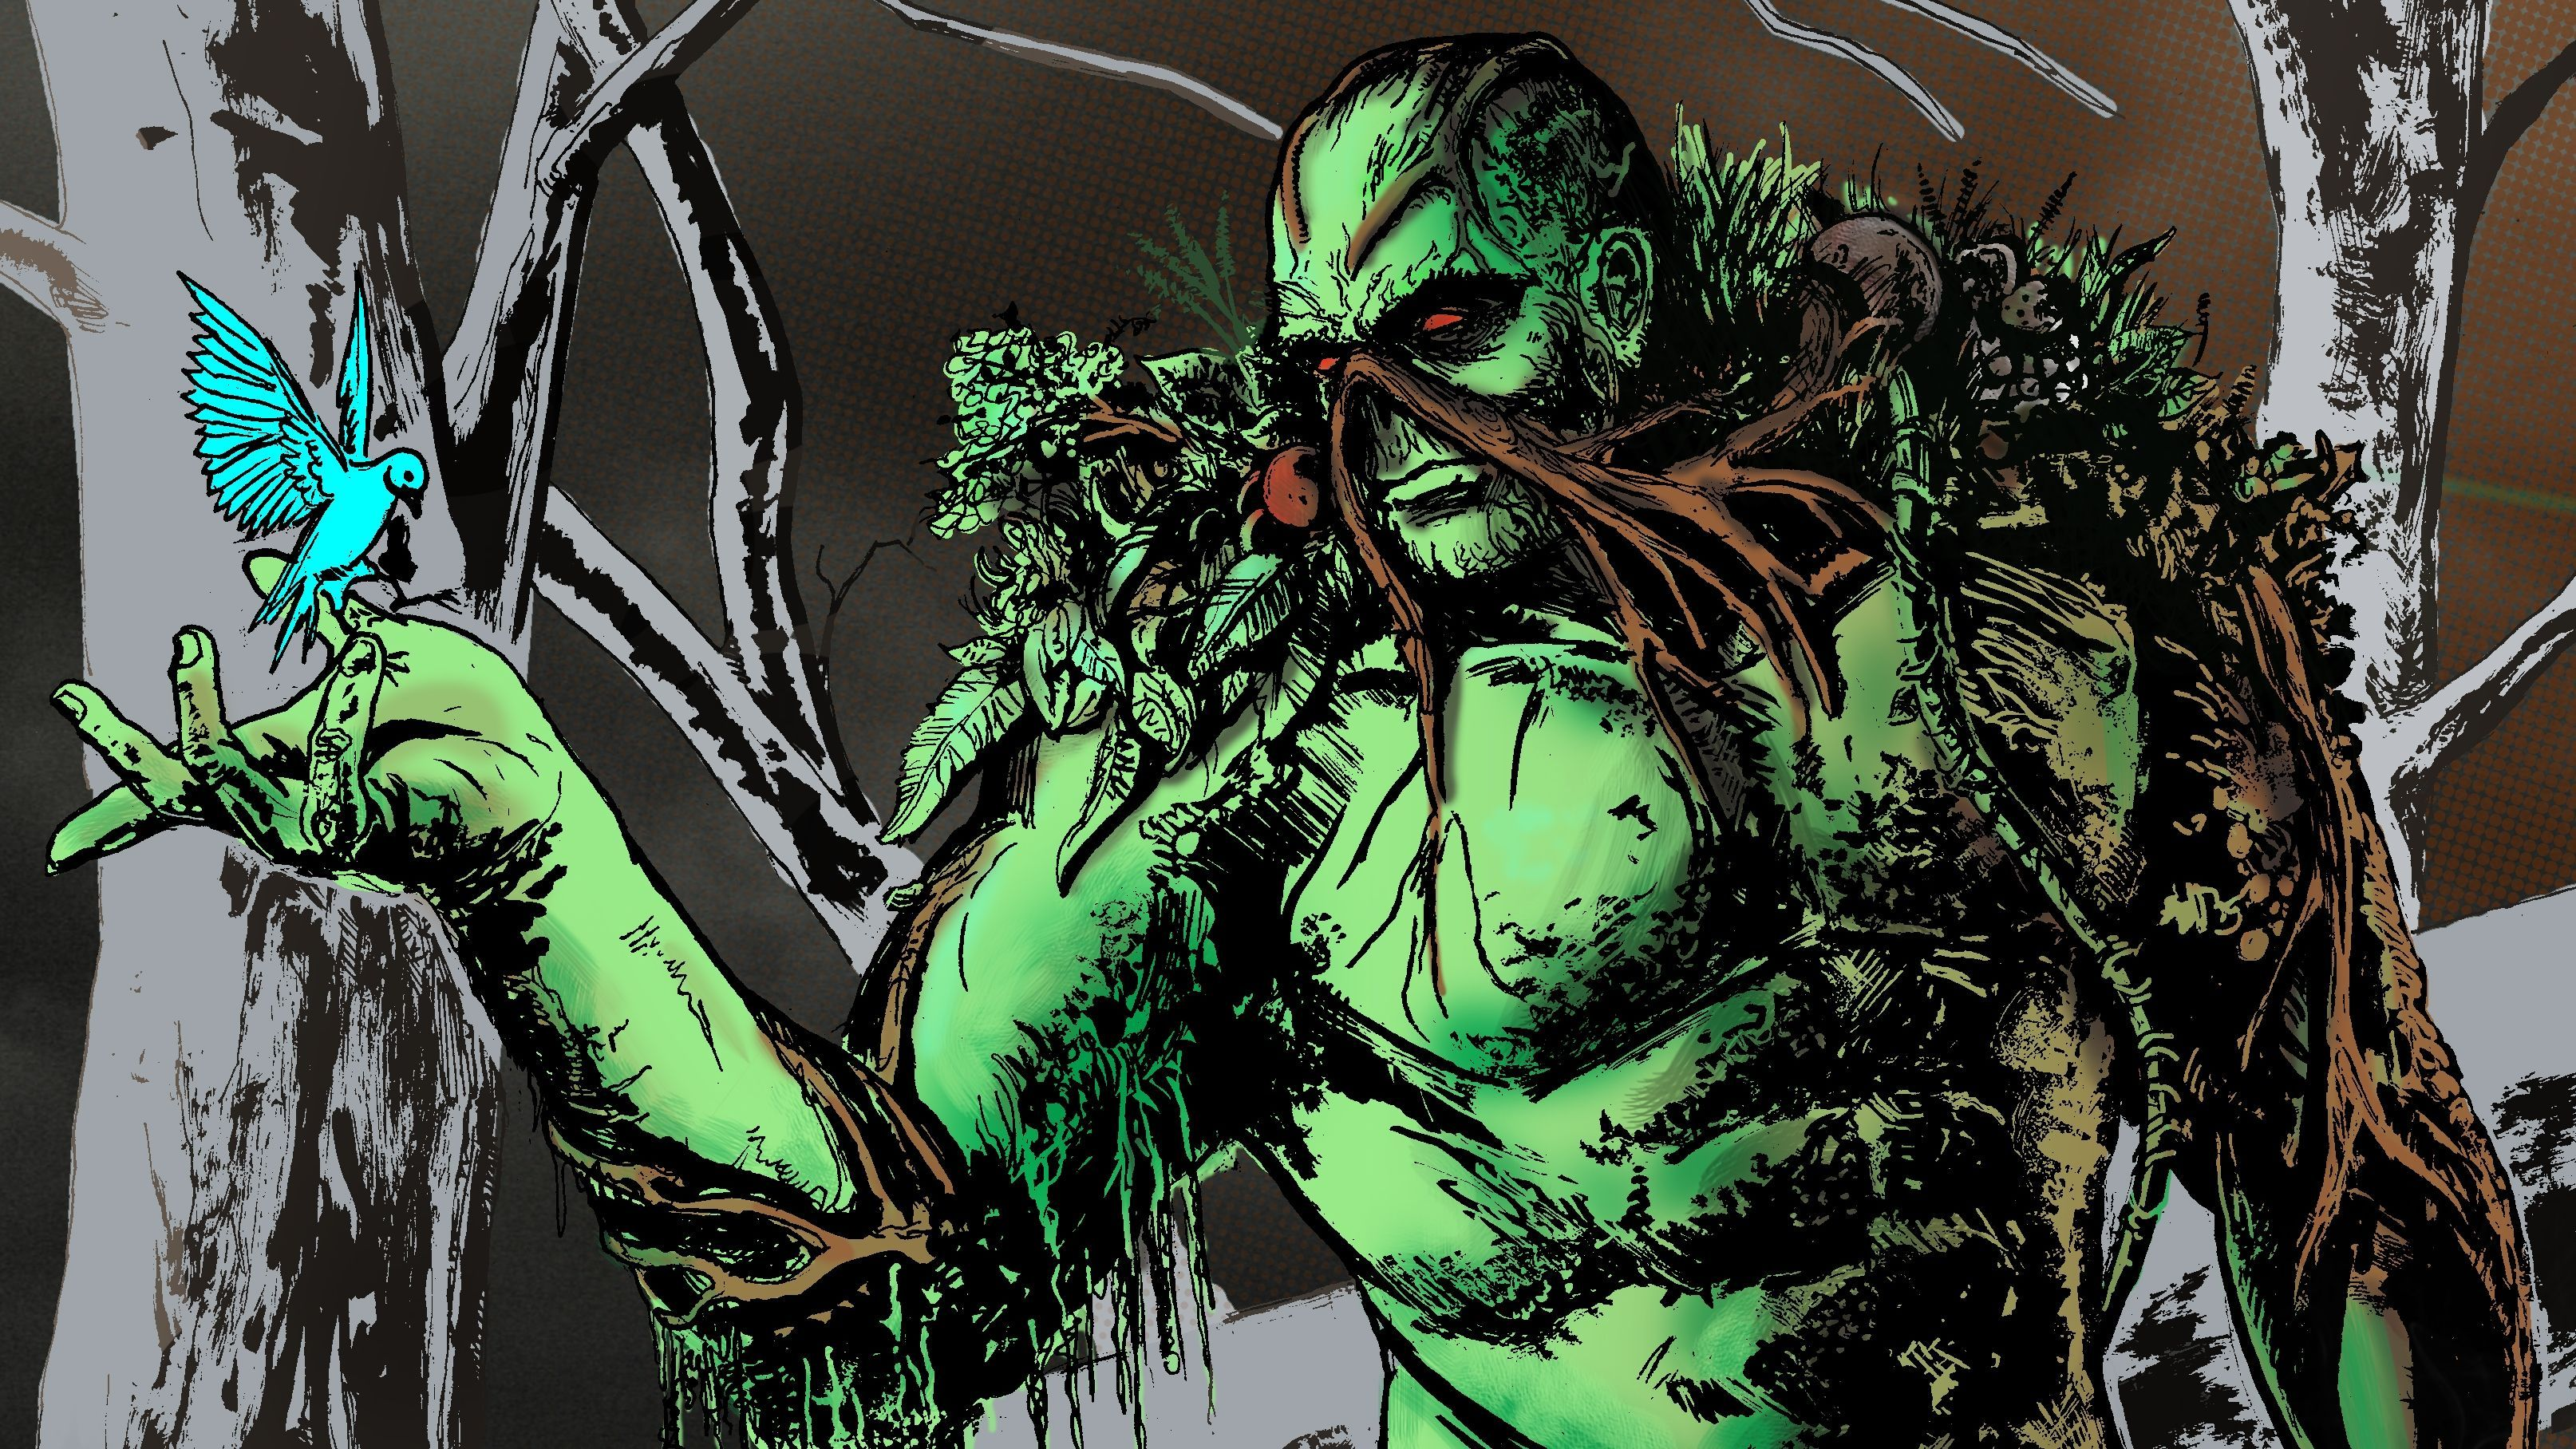 Swamp Thing Wallpapers Top Free Swamp Thing Backgrounds Wallpaperaccess